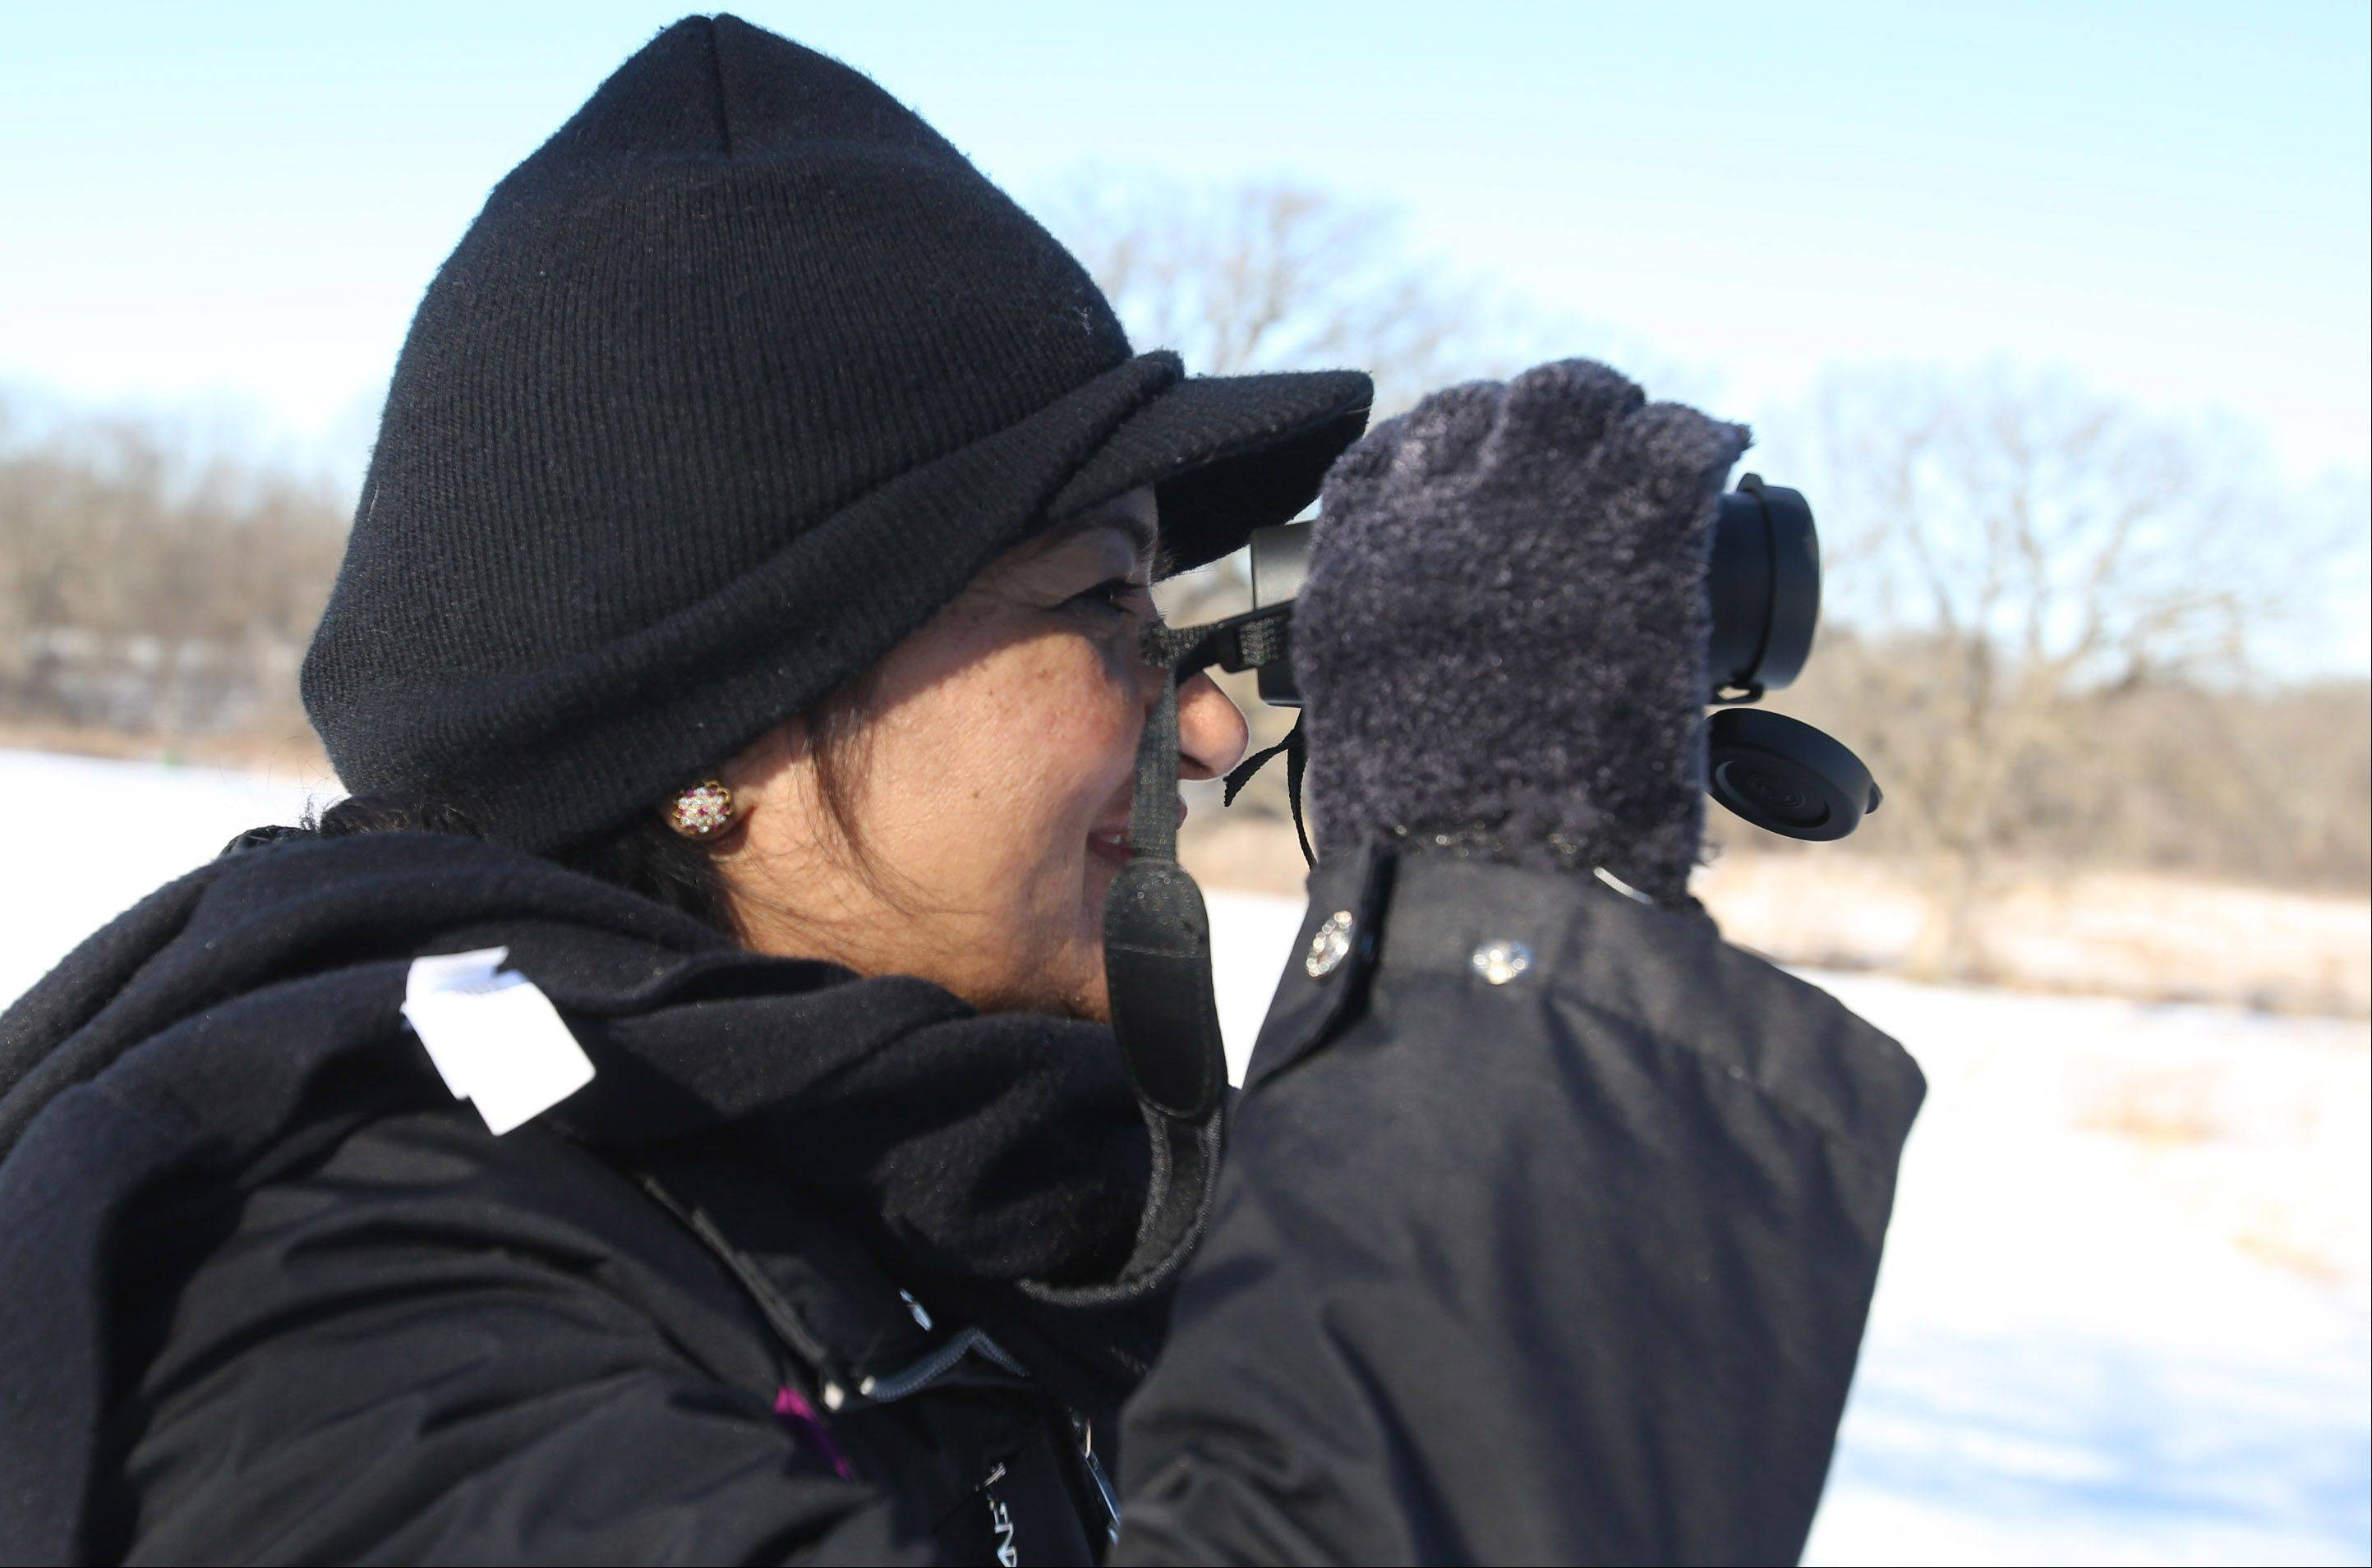 Kamini Mac of Aurora uses binoculars to spot birds near Creek Bend Nature Center during a Winter Birds program on Saturday in St. Charles.